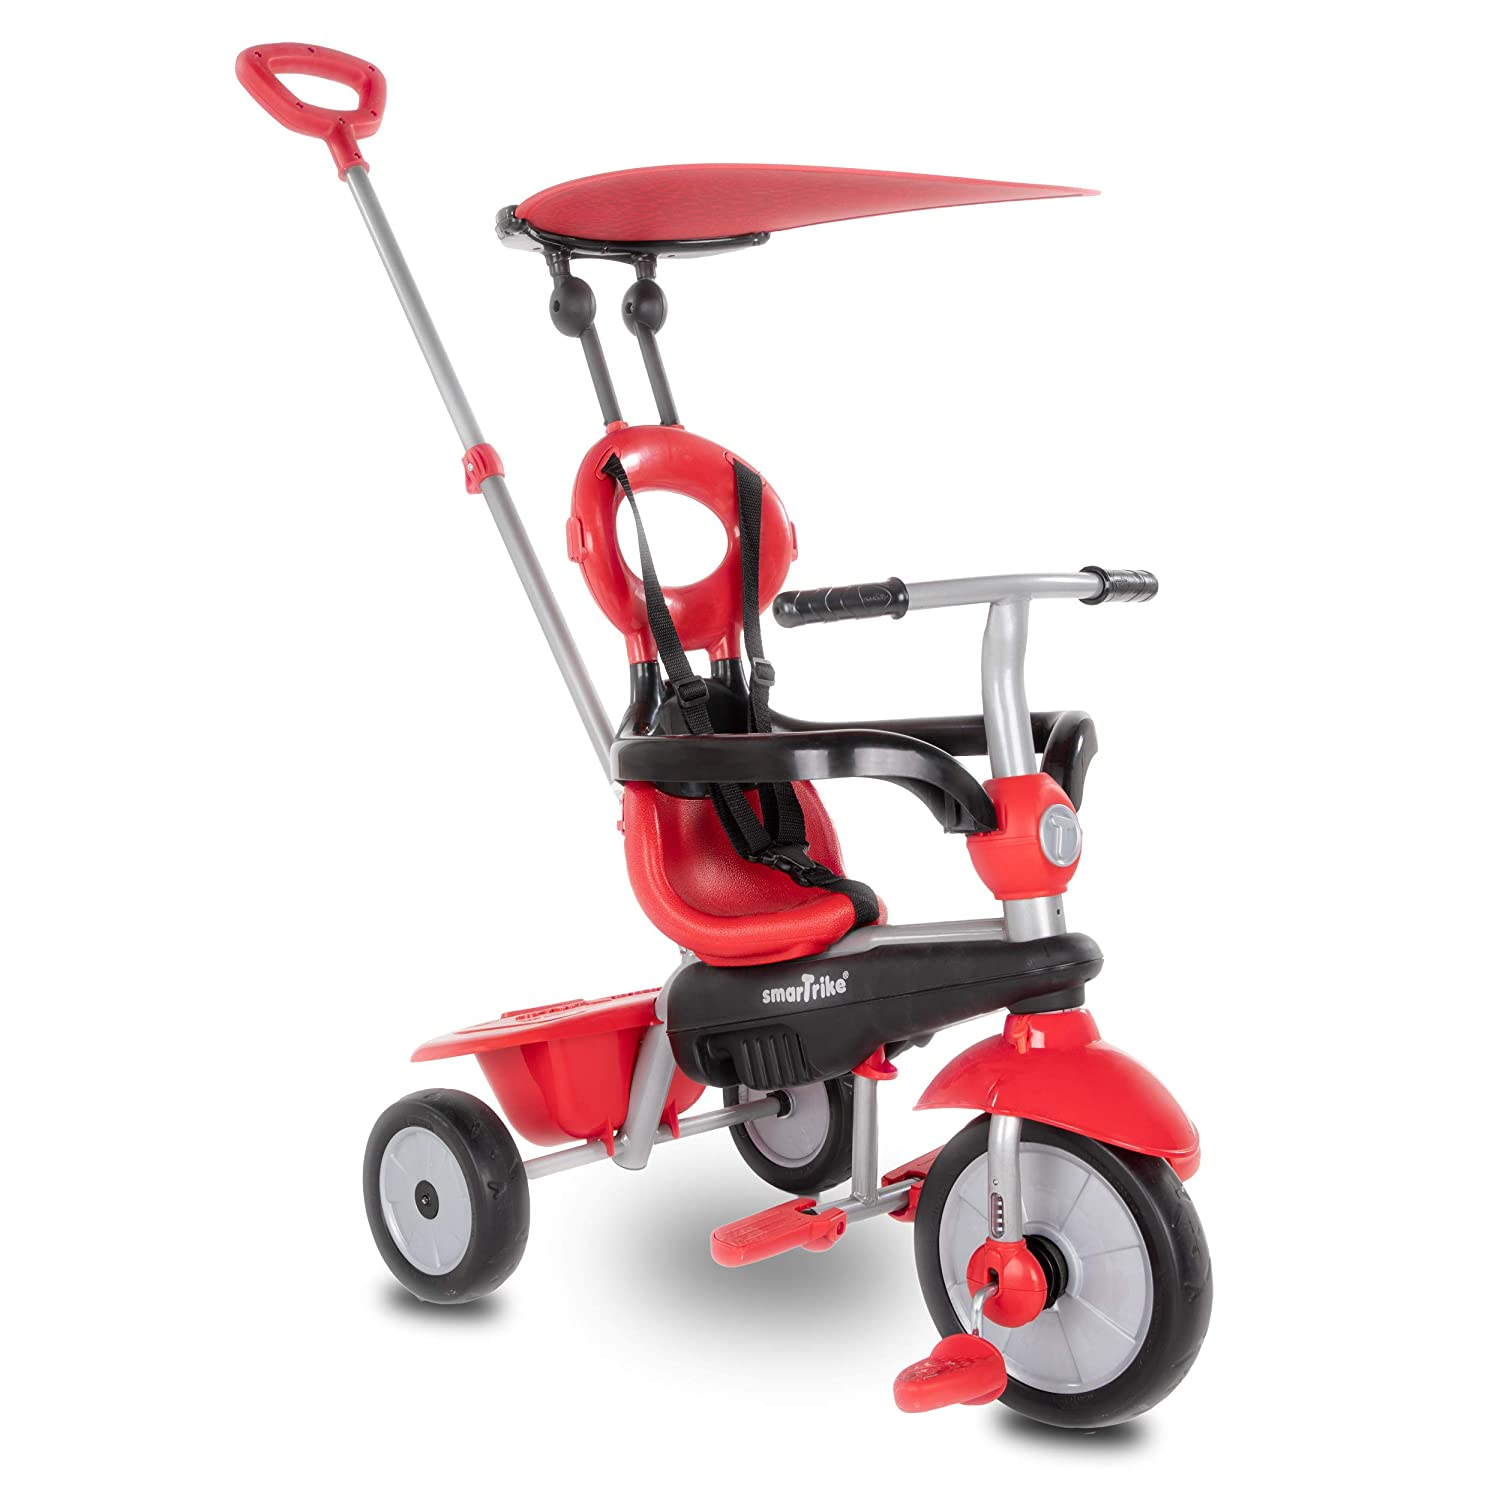 9219065c2f5 smarTrike Zoom 4 in 1 Baby Tricycle - Red, Tricycles - Amazon Canada